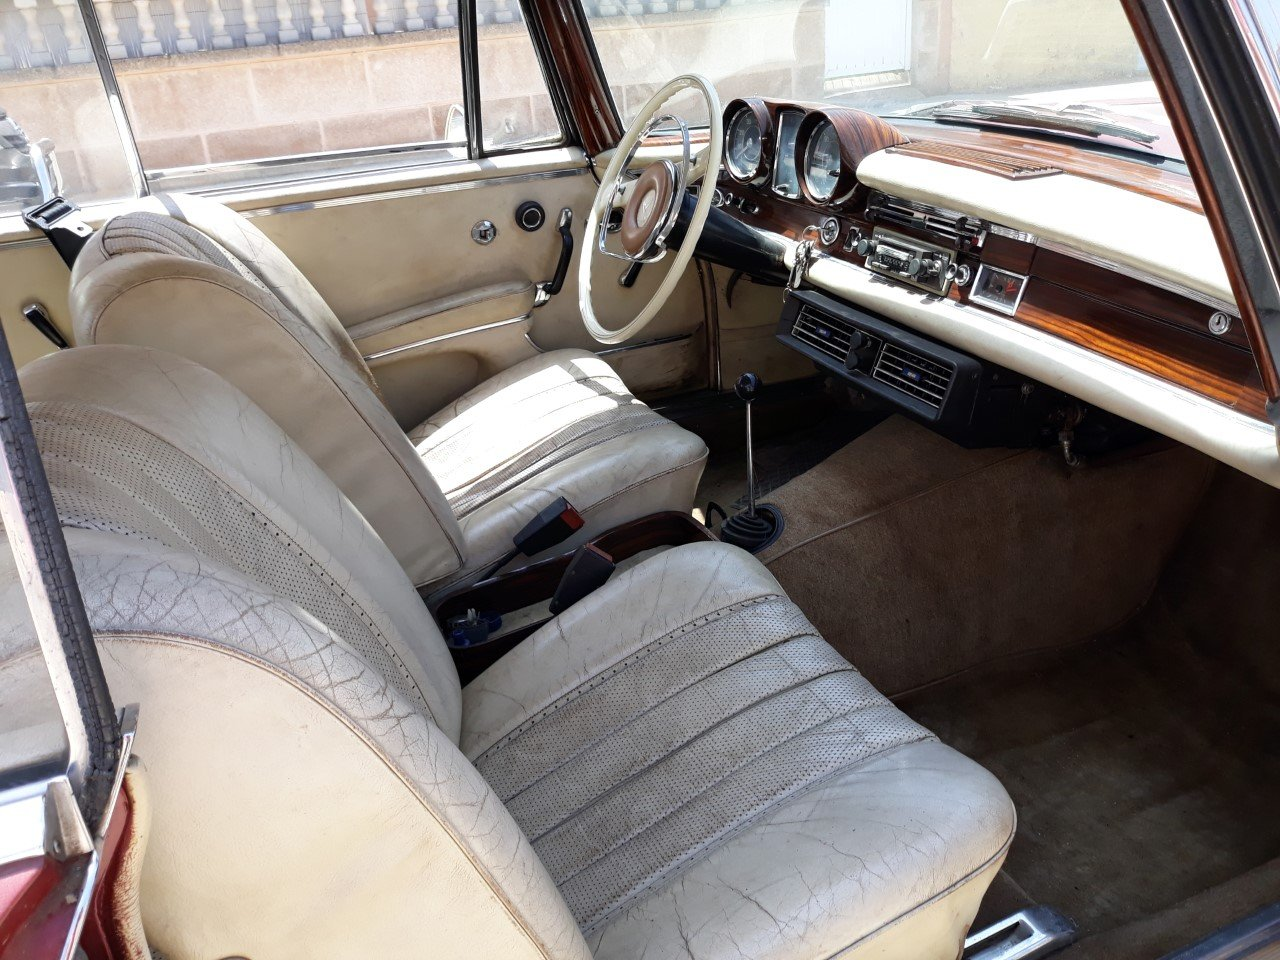 1967 LHD-Mercedes Benz 250SE Coupe-manual transmission For Sale (picture 5 of 6)